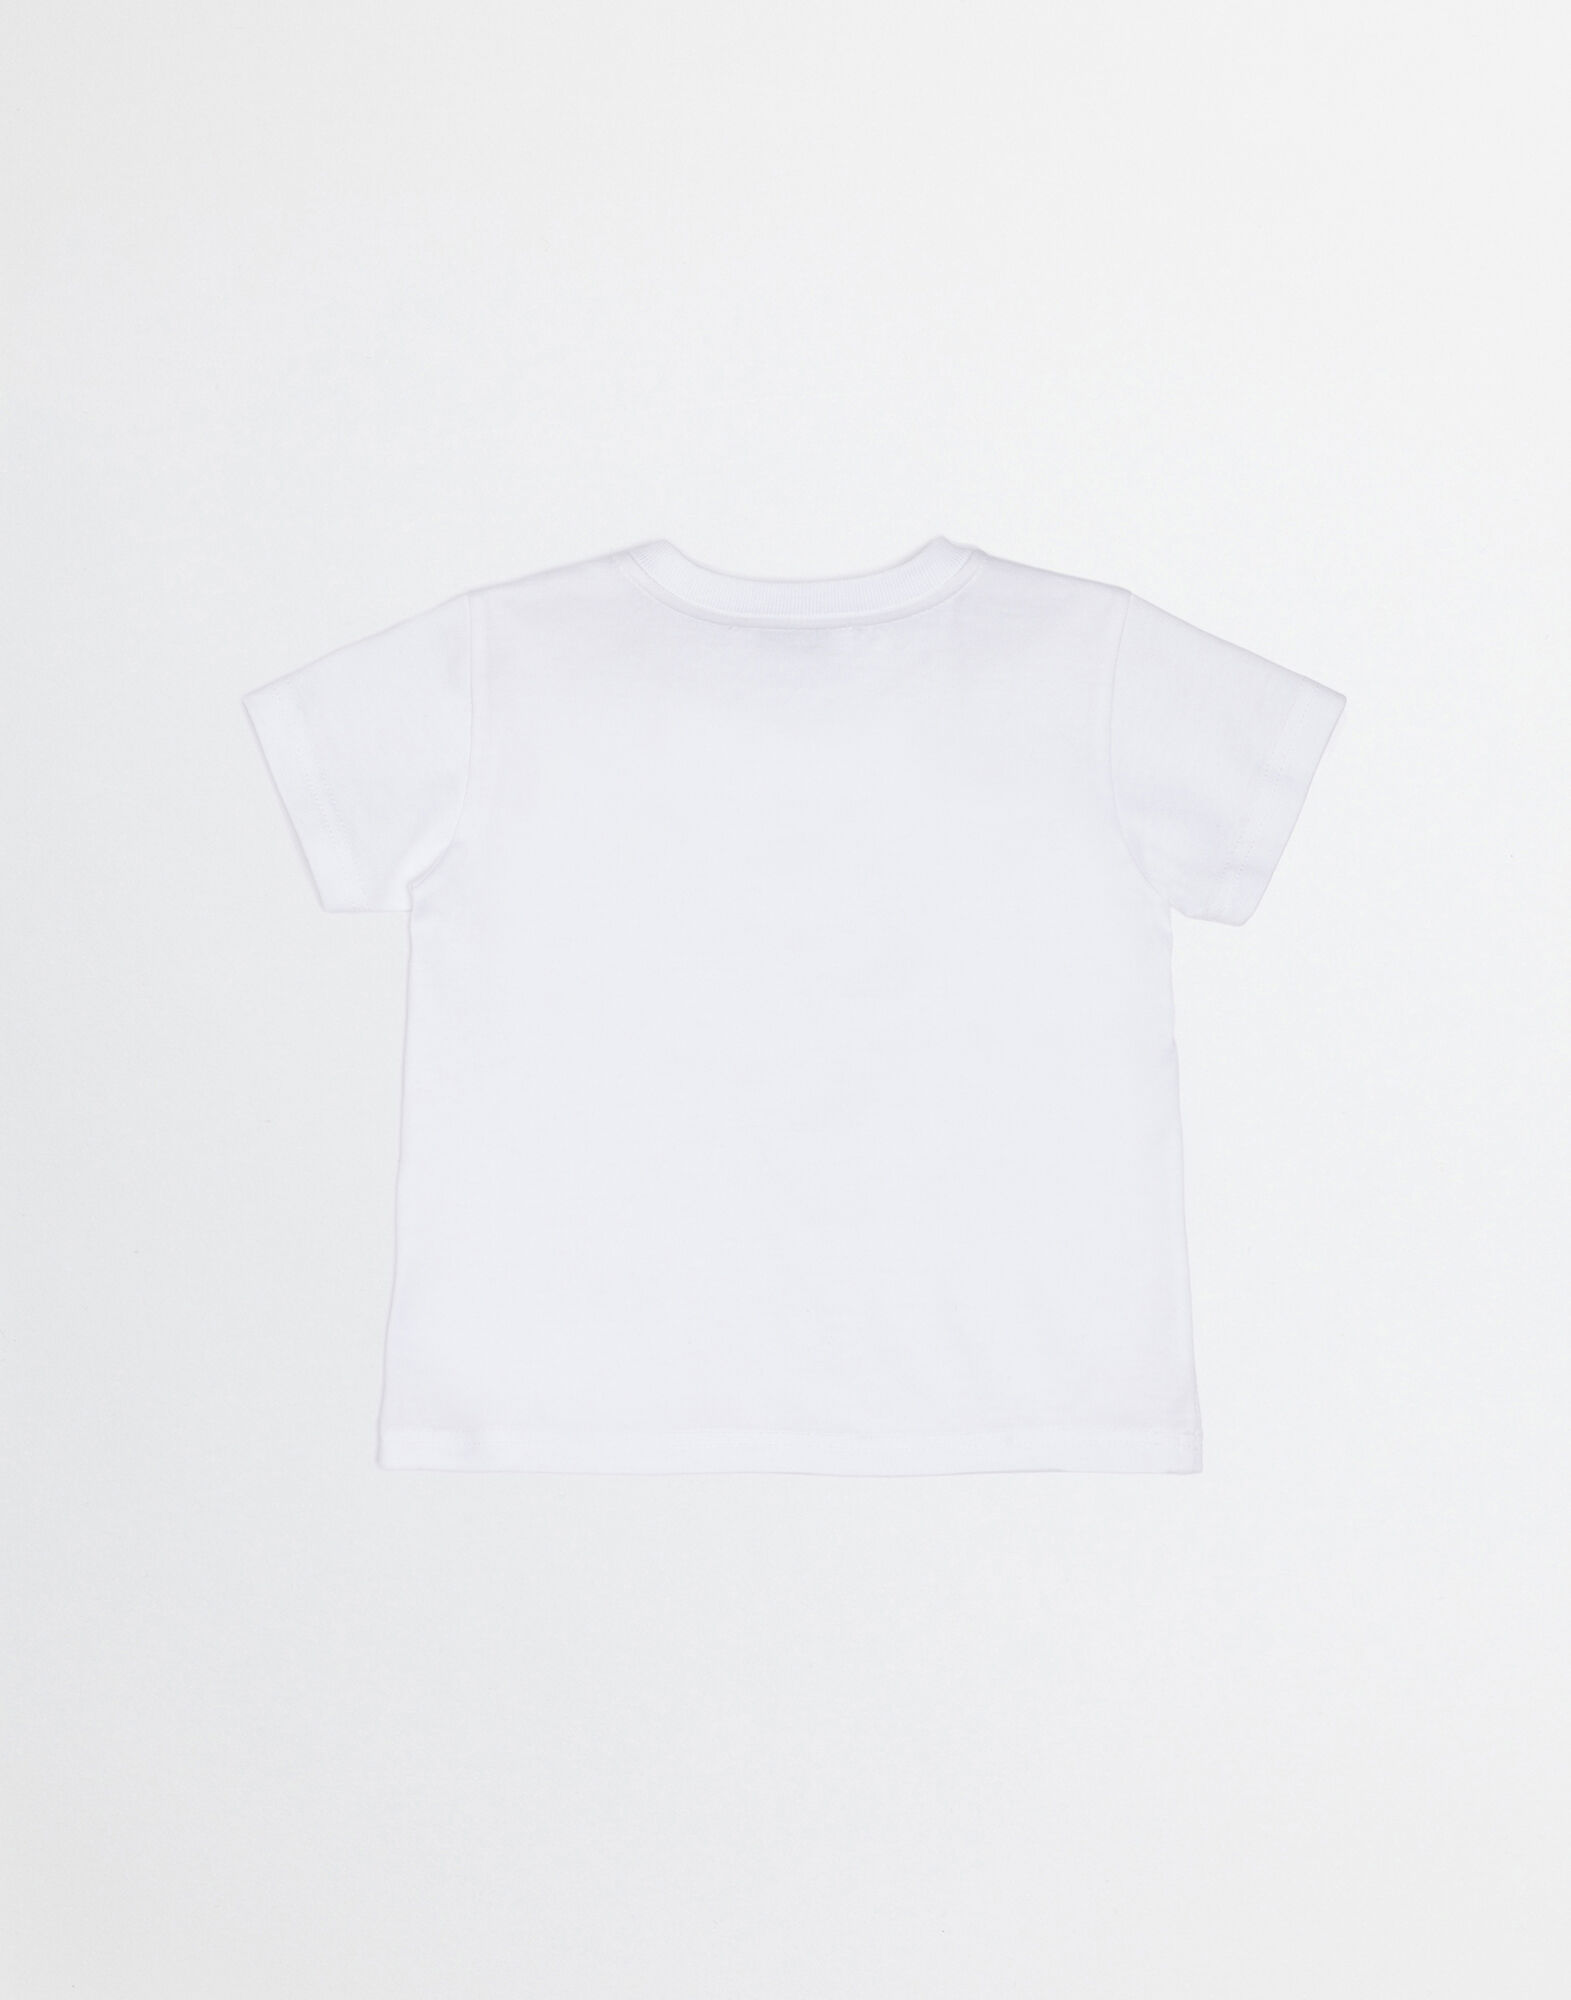 COTTON T-SHIRT WITH PATCHES OF THE DESIGNERS